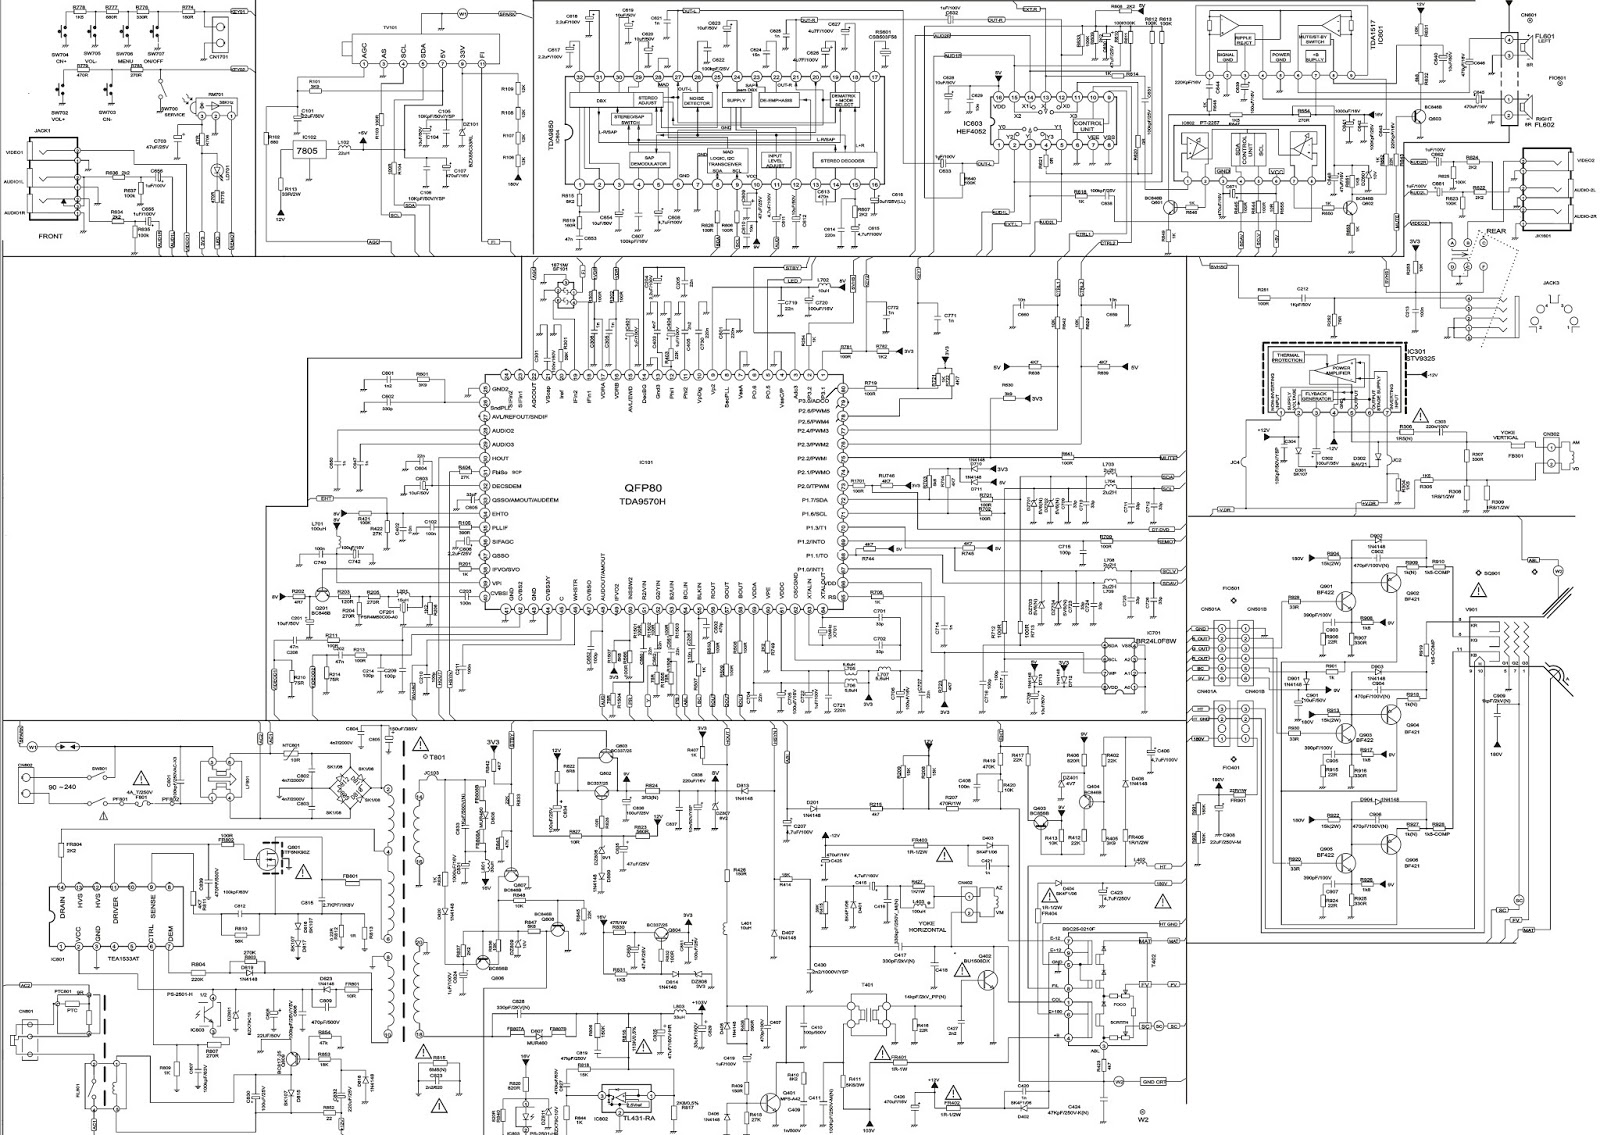 small resolution of crt tv circuit diagram wiring diagrams crt tv structure crt tv power diagram